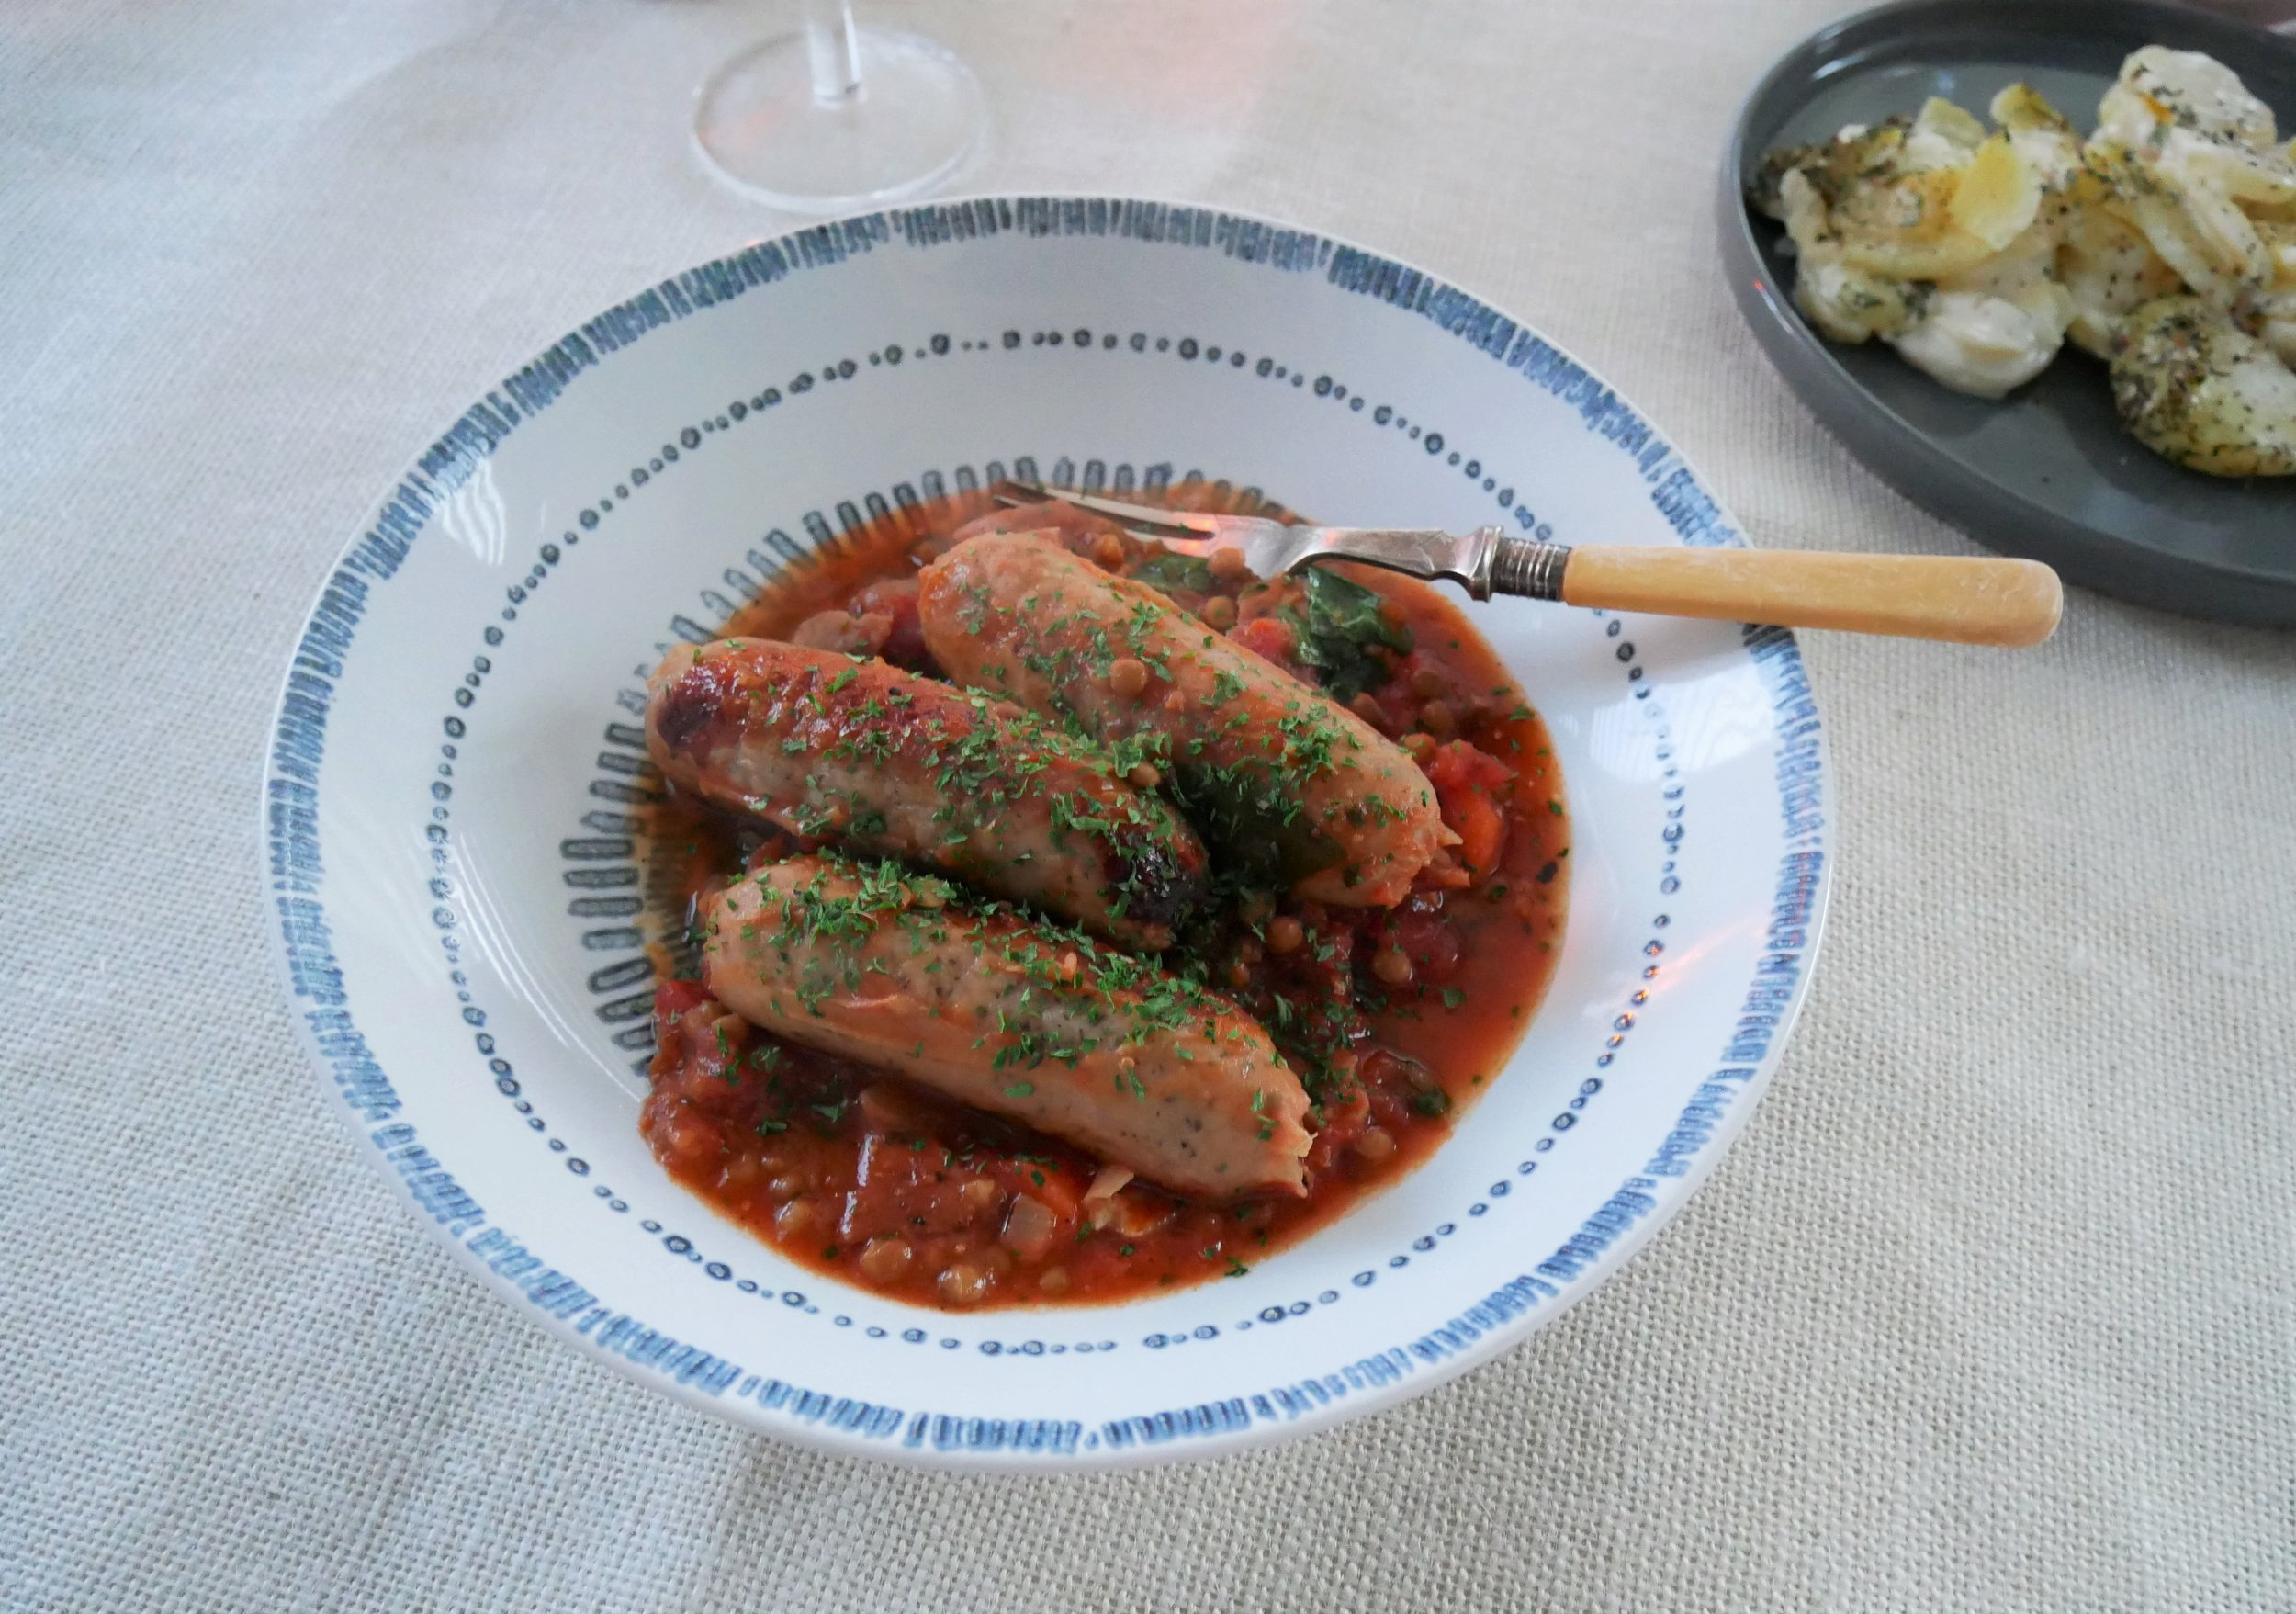 Paper_and_Moon_Louise_Dockery_sausage_green_lentils (2).JPG